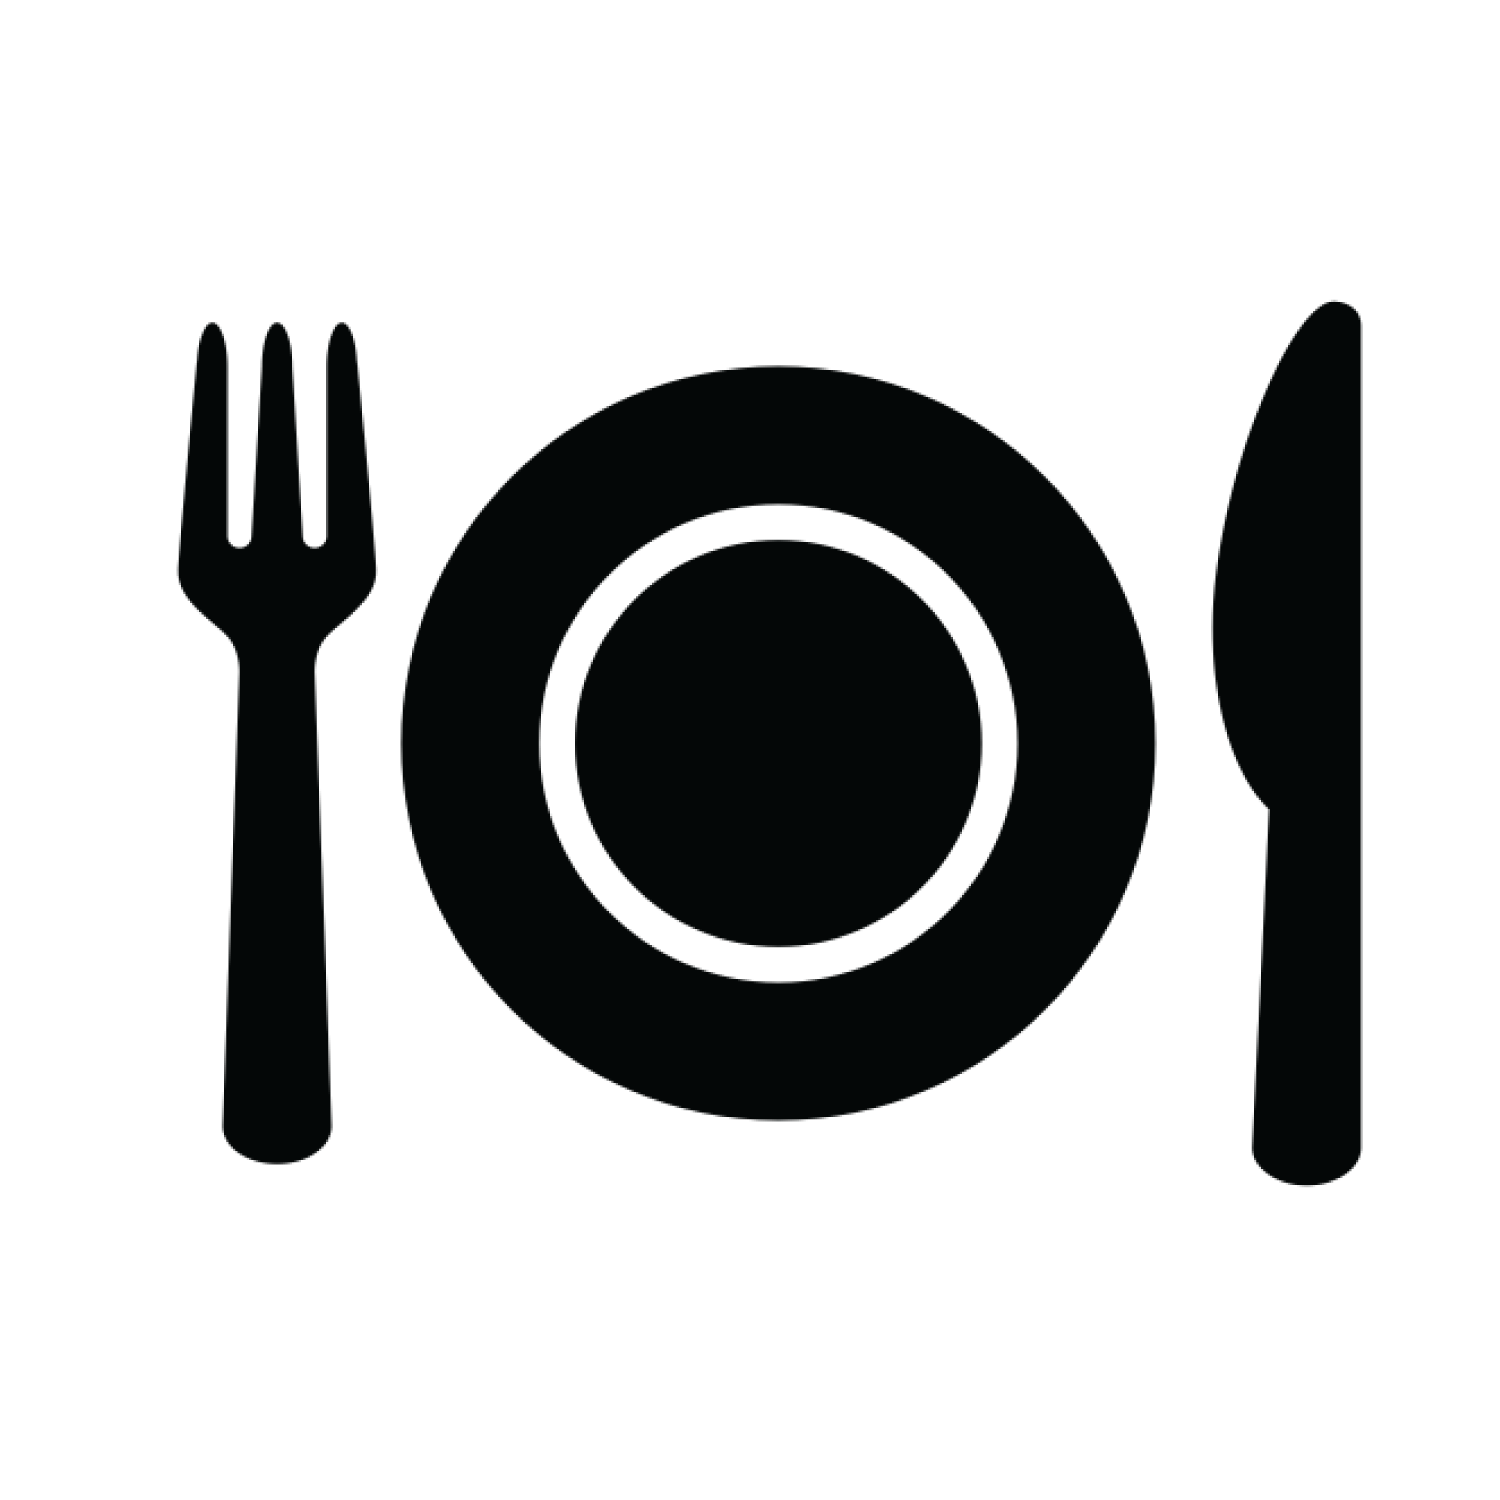 Meetup_Icon_-_Supper-02.png